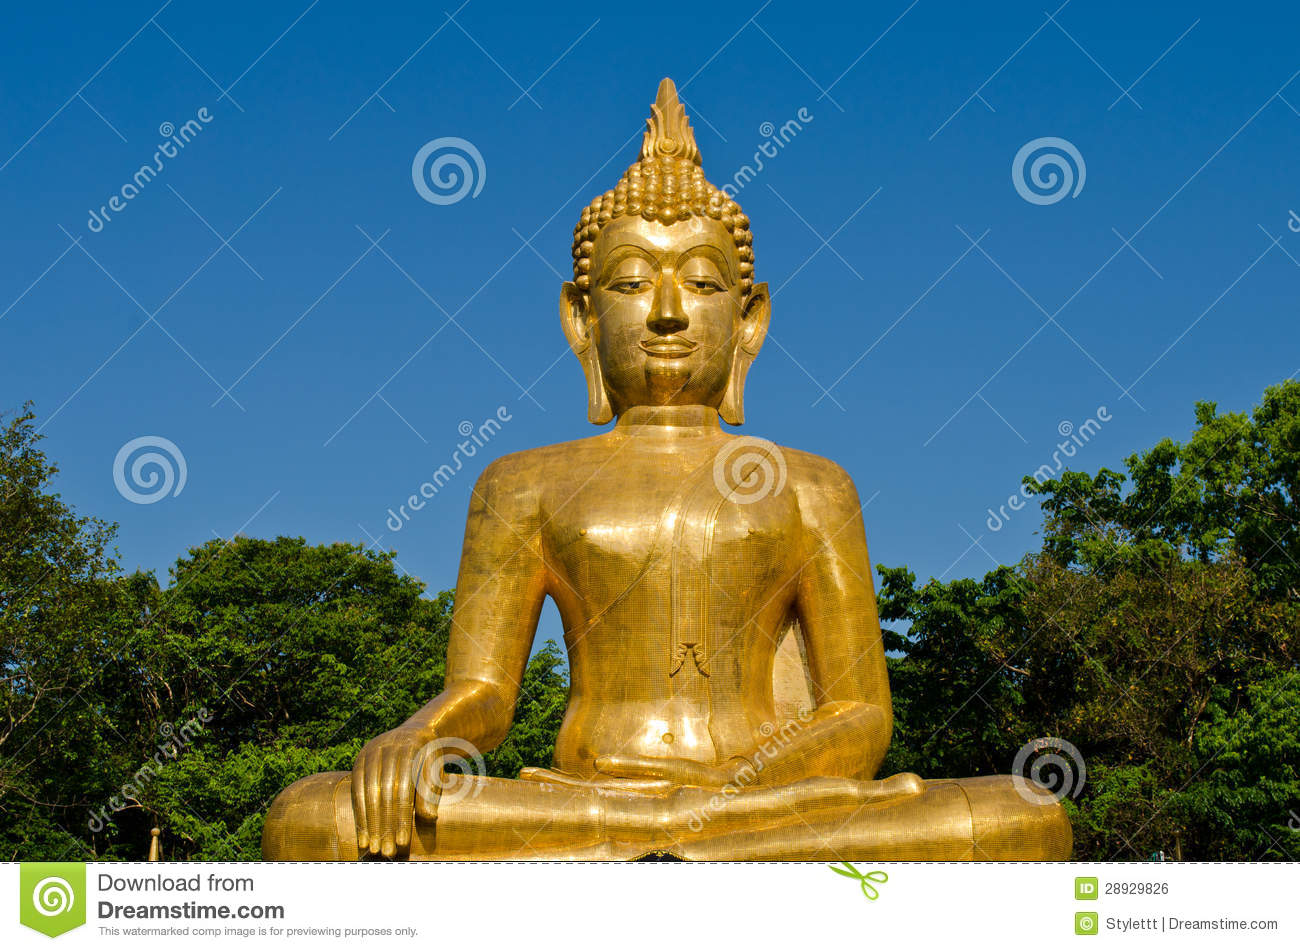 golden buddha statue at temple of thailand royalty free stock image image 28929826. Black Bedroom Furniture Sets. Home Design Ideas